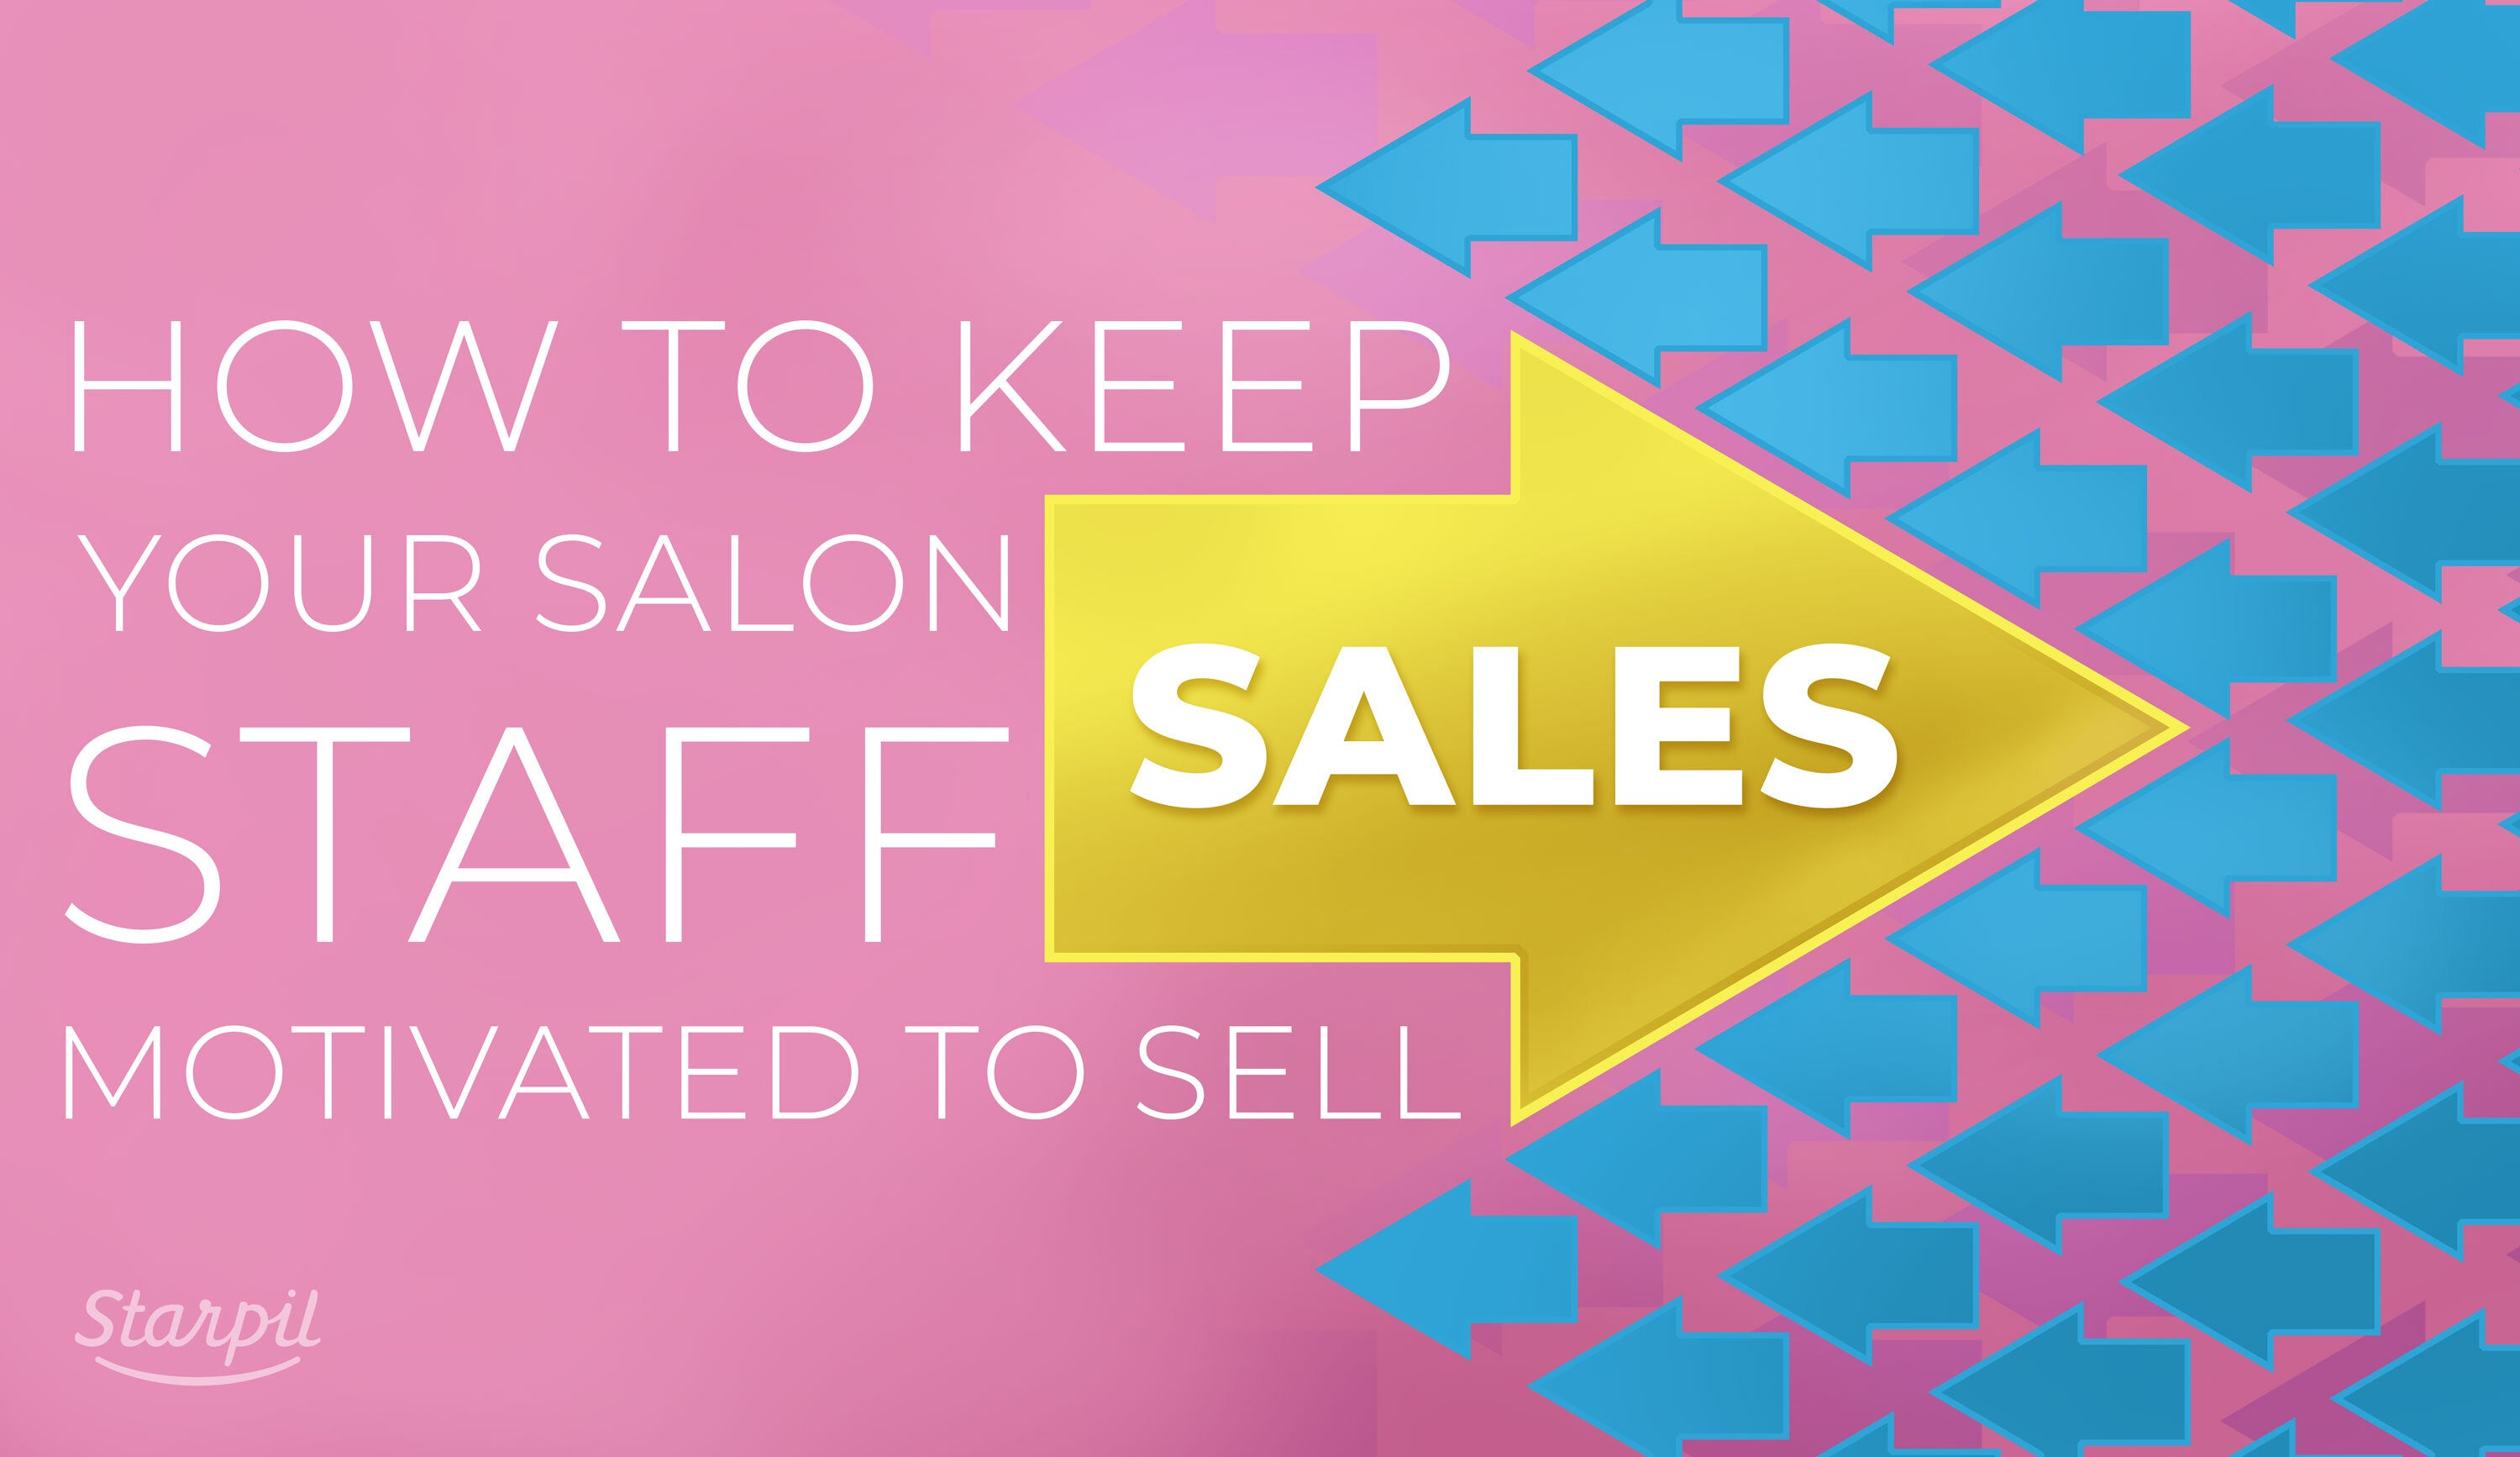 How to Motivate Your Salon Staff to Sell